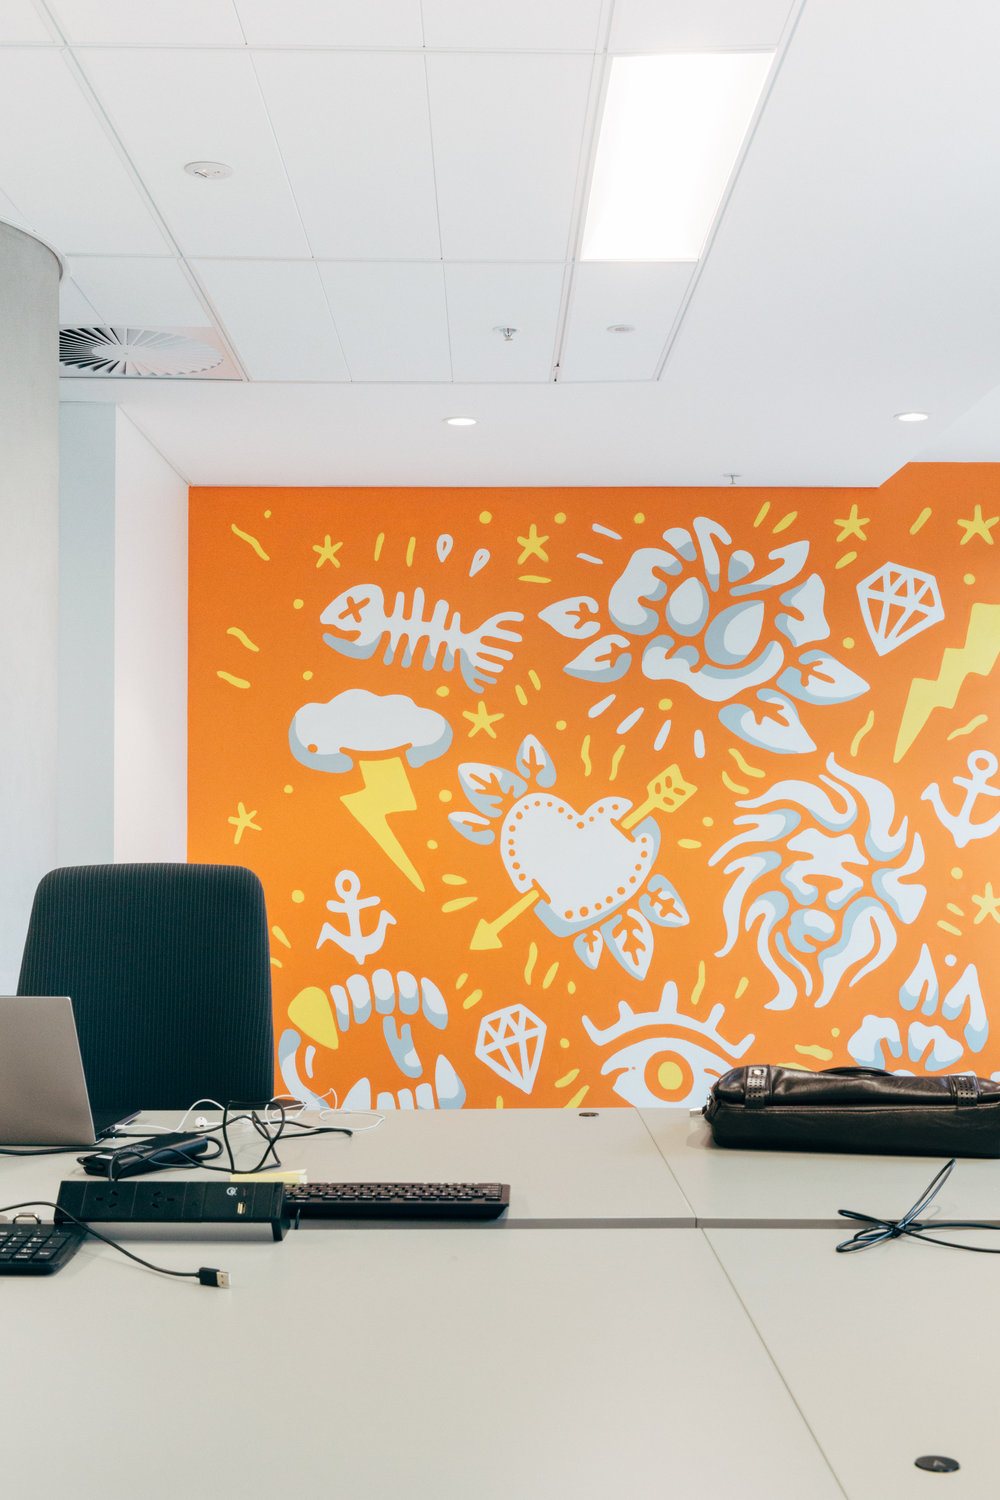 Art_Pharmacy_Consulting_Accenture_Melbourne_Murals10.jpg